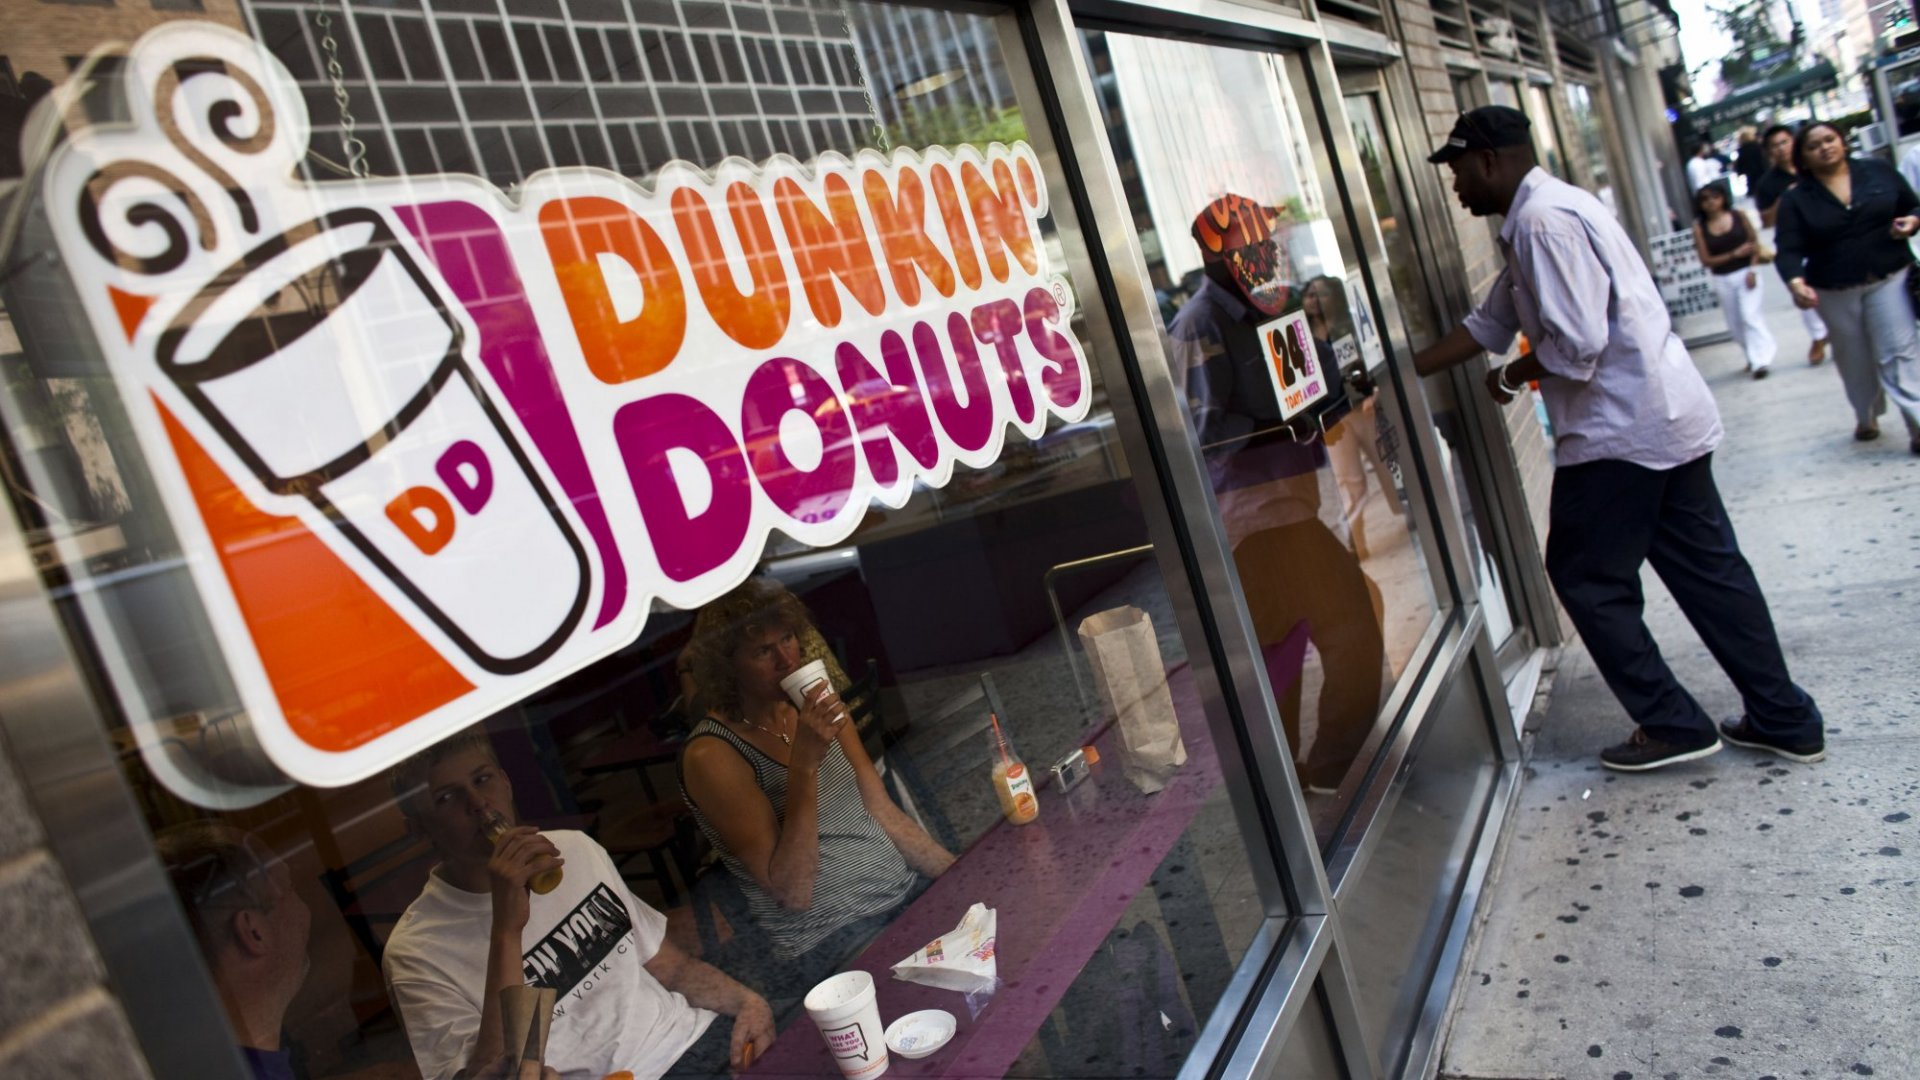 Dunkin' Donuts Just Made a Truly Stunning Announcement That Will Change Everything You Think About Dunkin'. (It's Much More Than Just Changing Their Name)